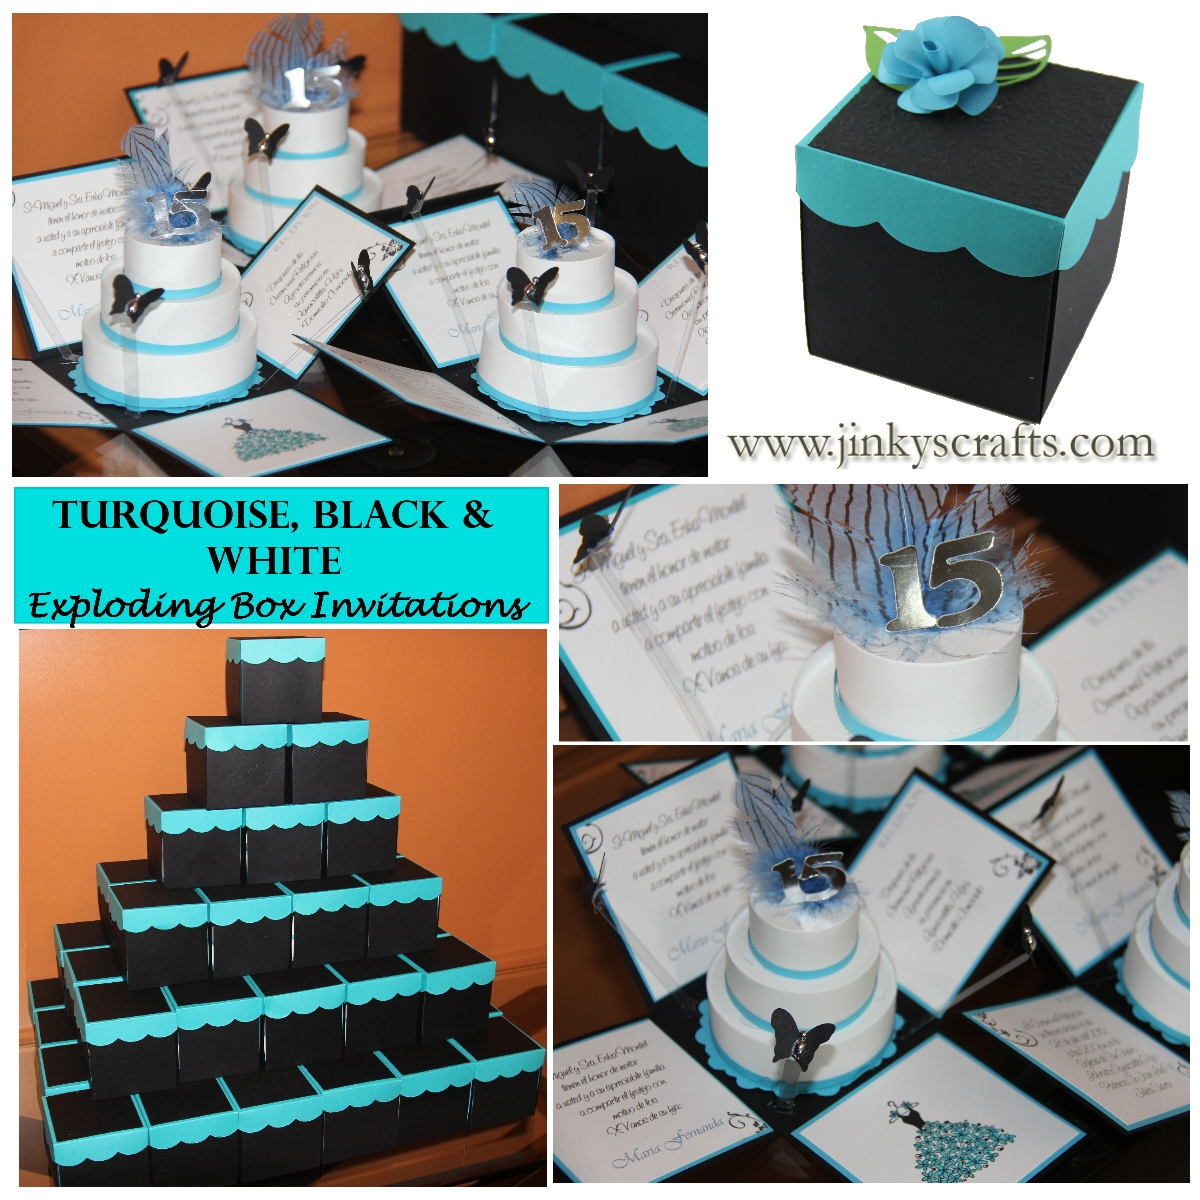 Earnings Disclaimer >> Purple & Silver Exploding Box w/ 3-Tier Cake Invitation Kits - Jinkys Crafts